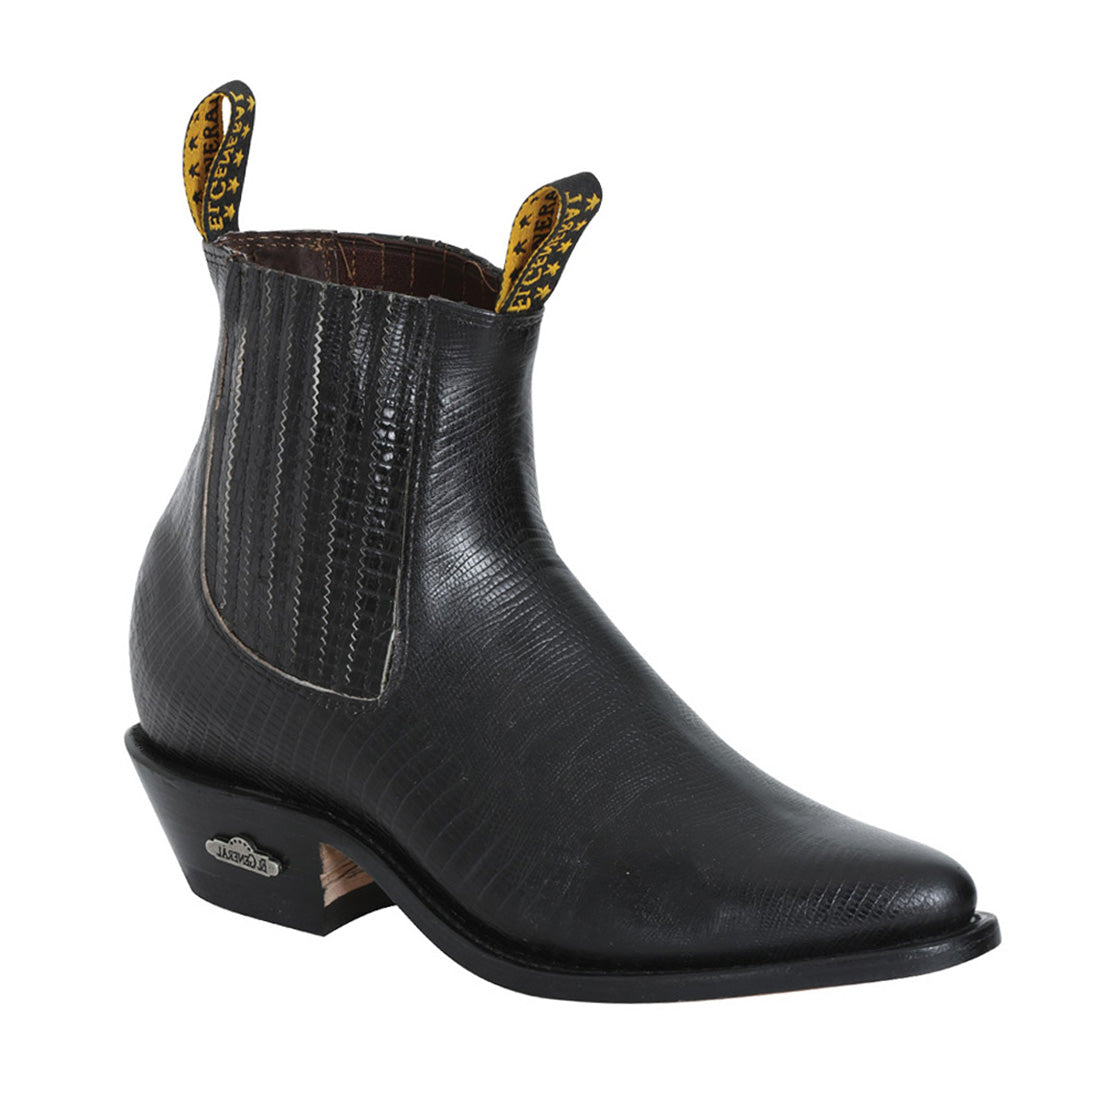 El General Men's Lizard Print Pointed Toe Ankle Boots